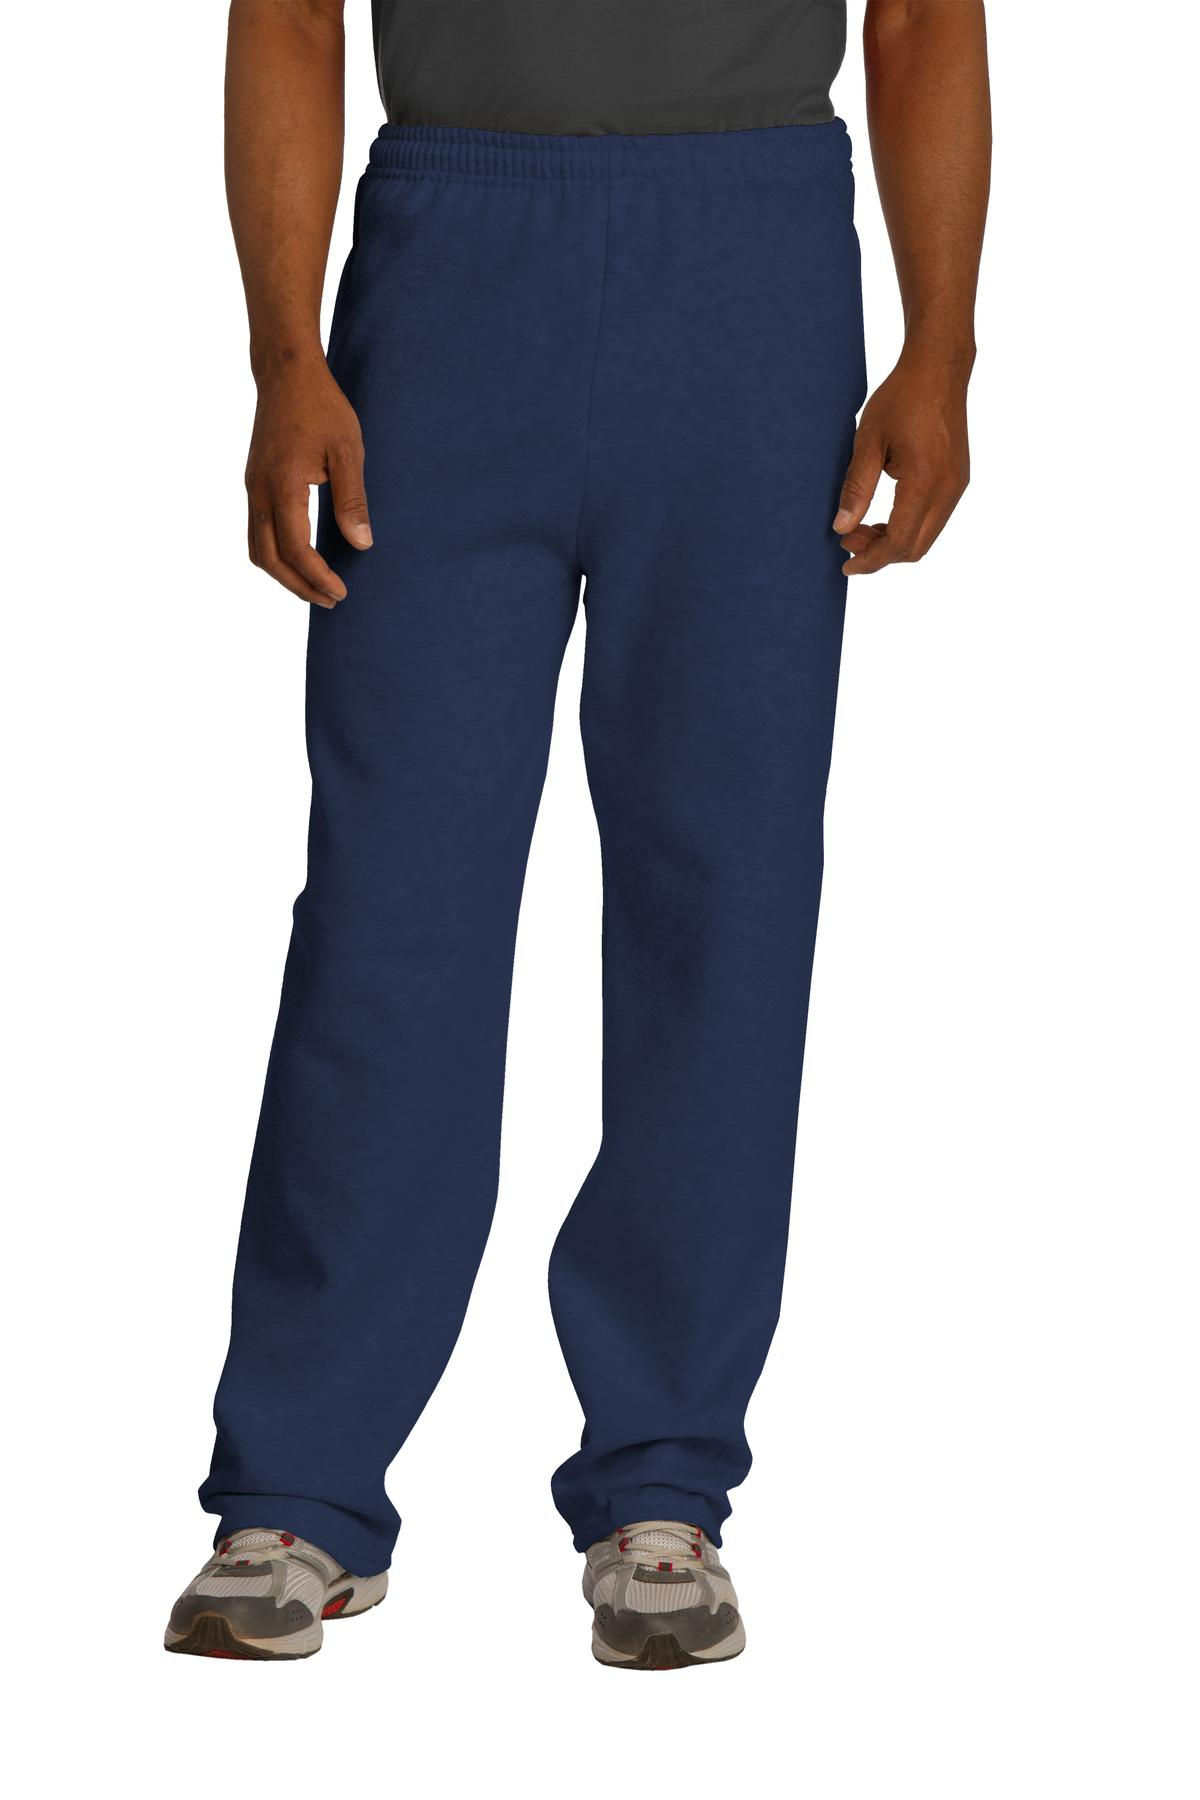 JERZEES ®  NuBlend ®  Open Bottom Pant with Pockets. 974MP - Navy